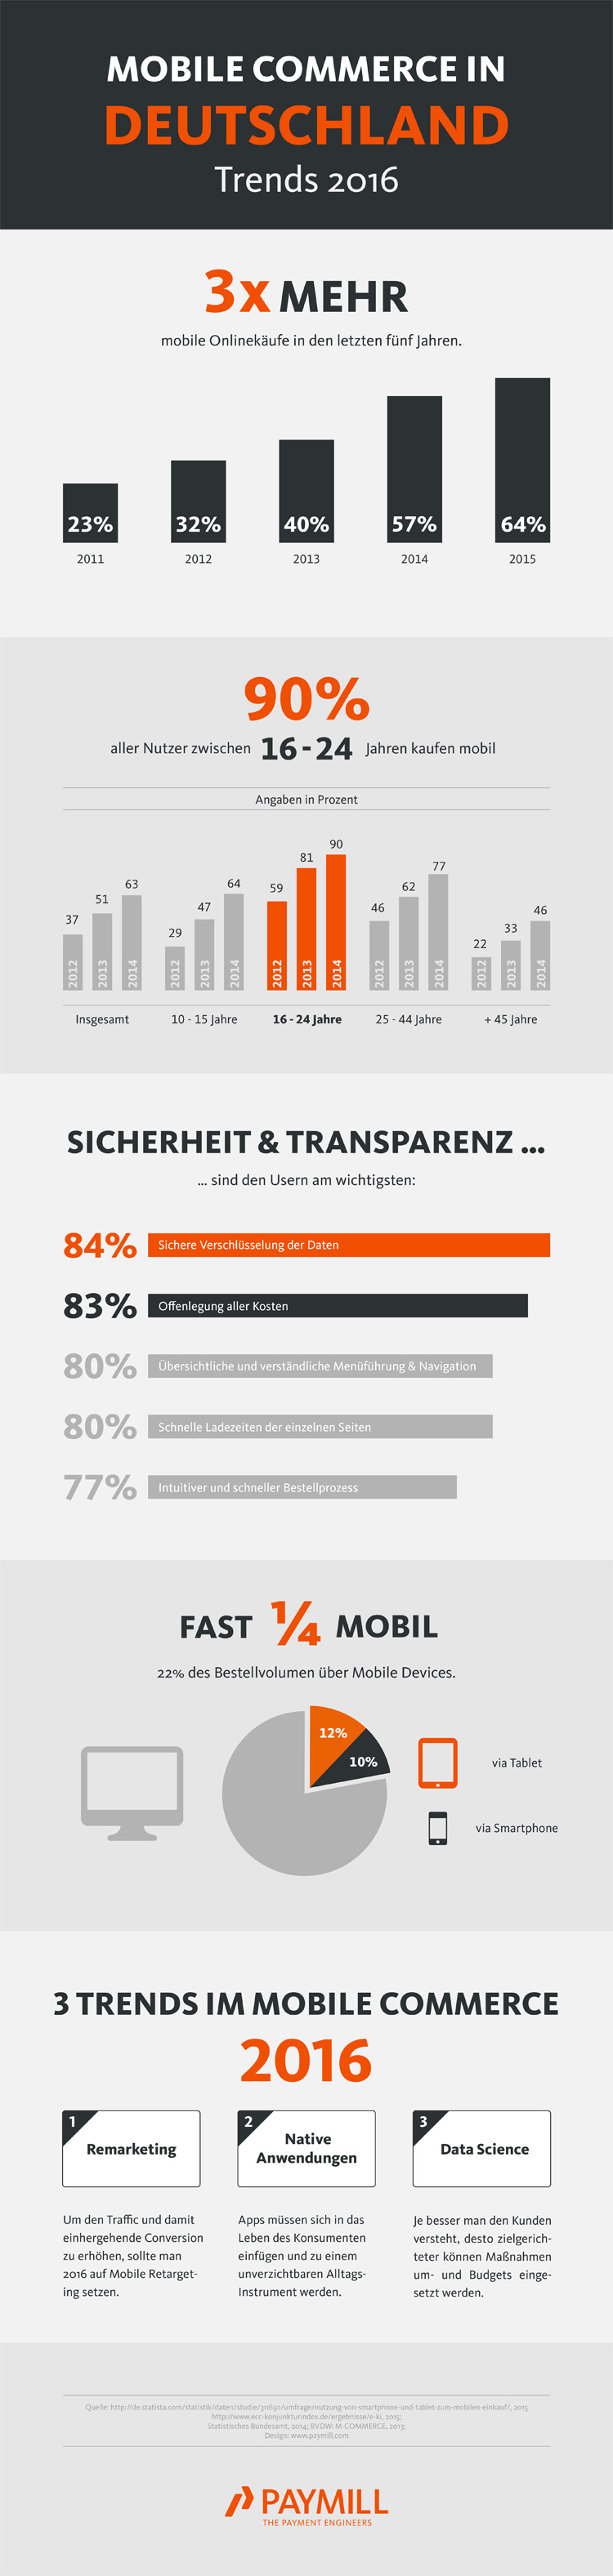 Trends beim Mobile Commerce in Deutschland 2016